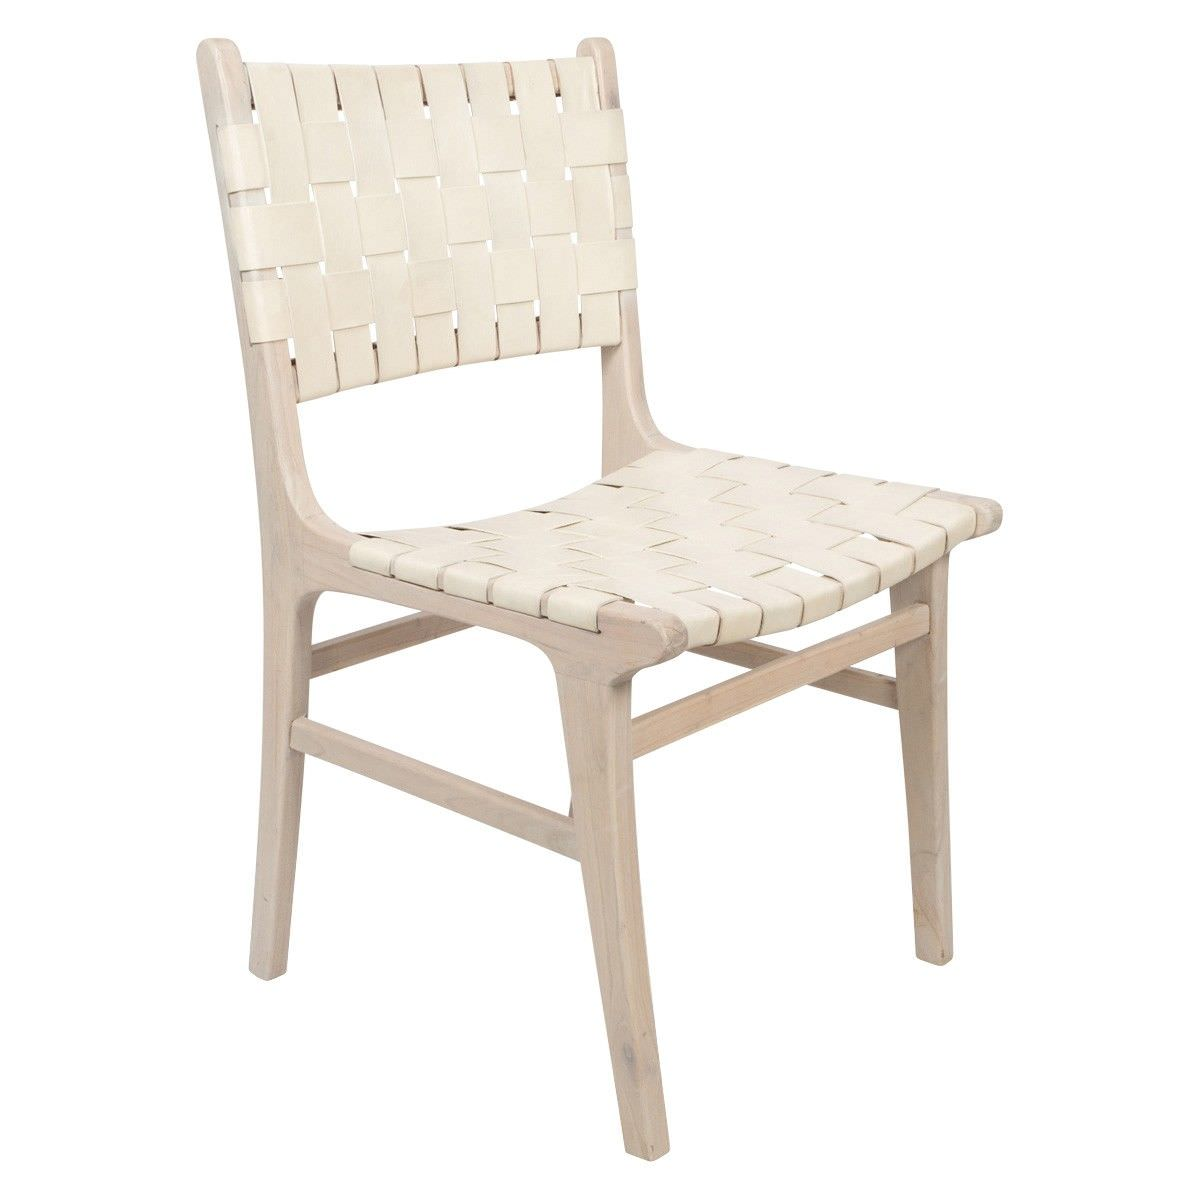 Numadu Wooden Dining Chair with Woven Leather Seat, Ivory